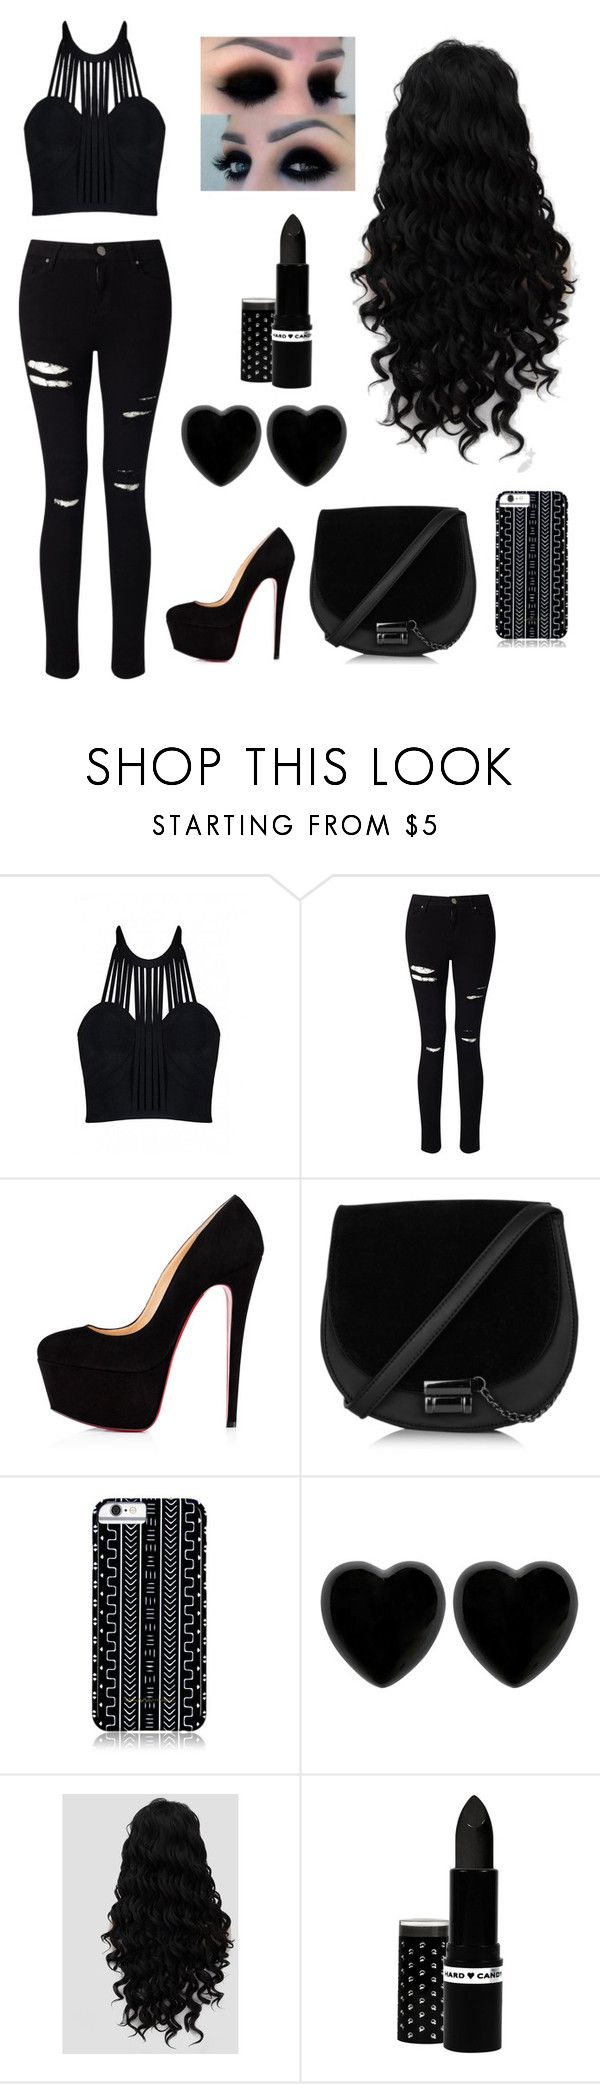 """My Love For Black Is Endless ✳"" by ccatprvncess ❤ liked on Polyvore featuring Posh Girl, Miss Selfridge, Christian Louboutin, Savannah Hayes, Dollydagger and Hard Candy"